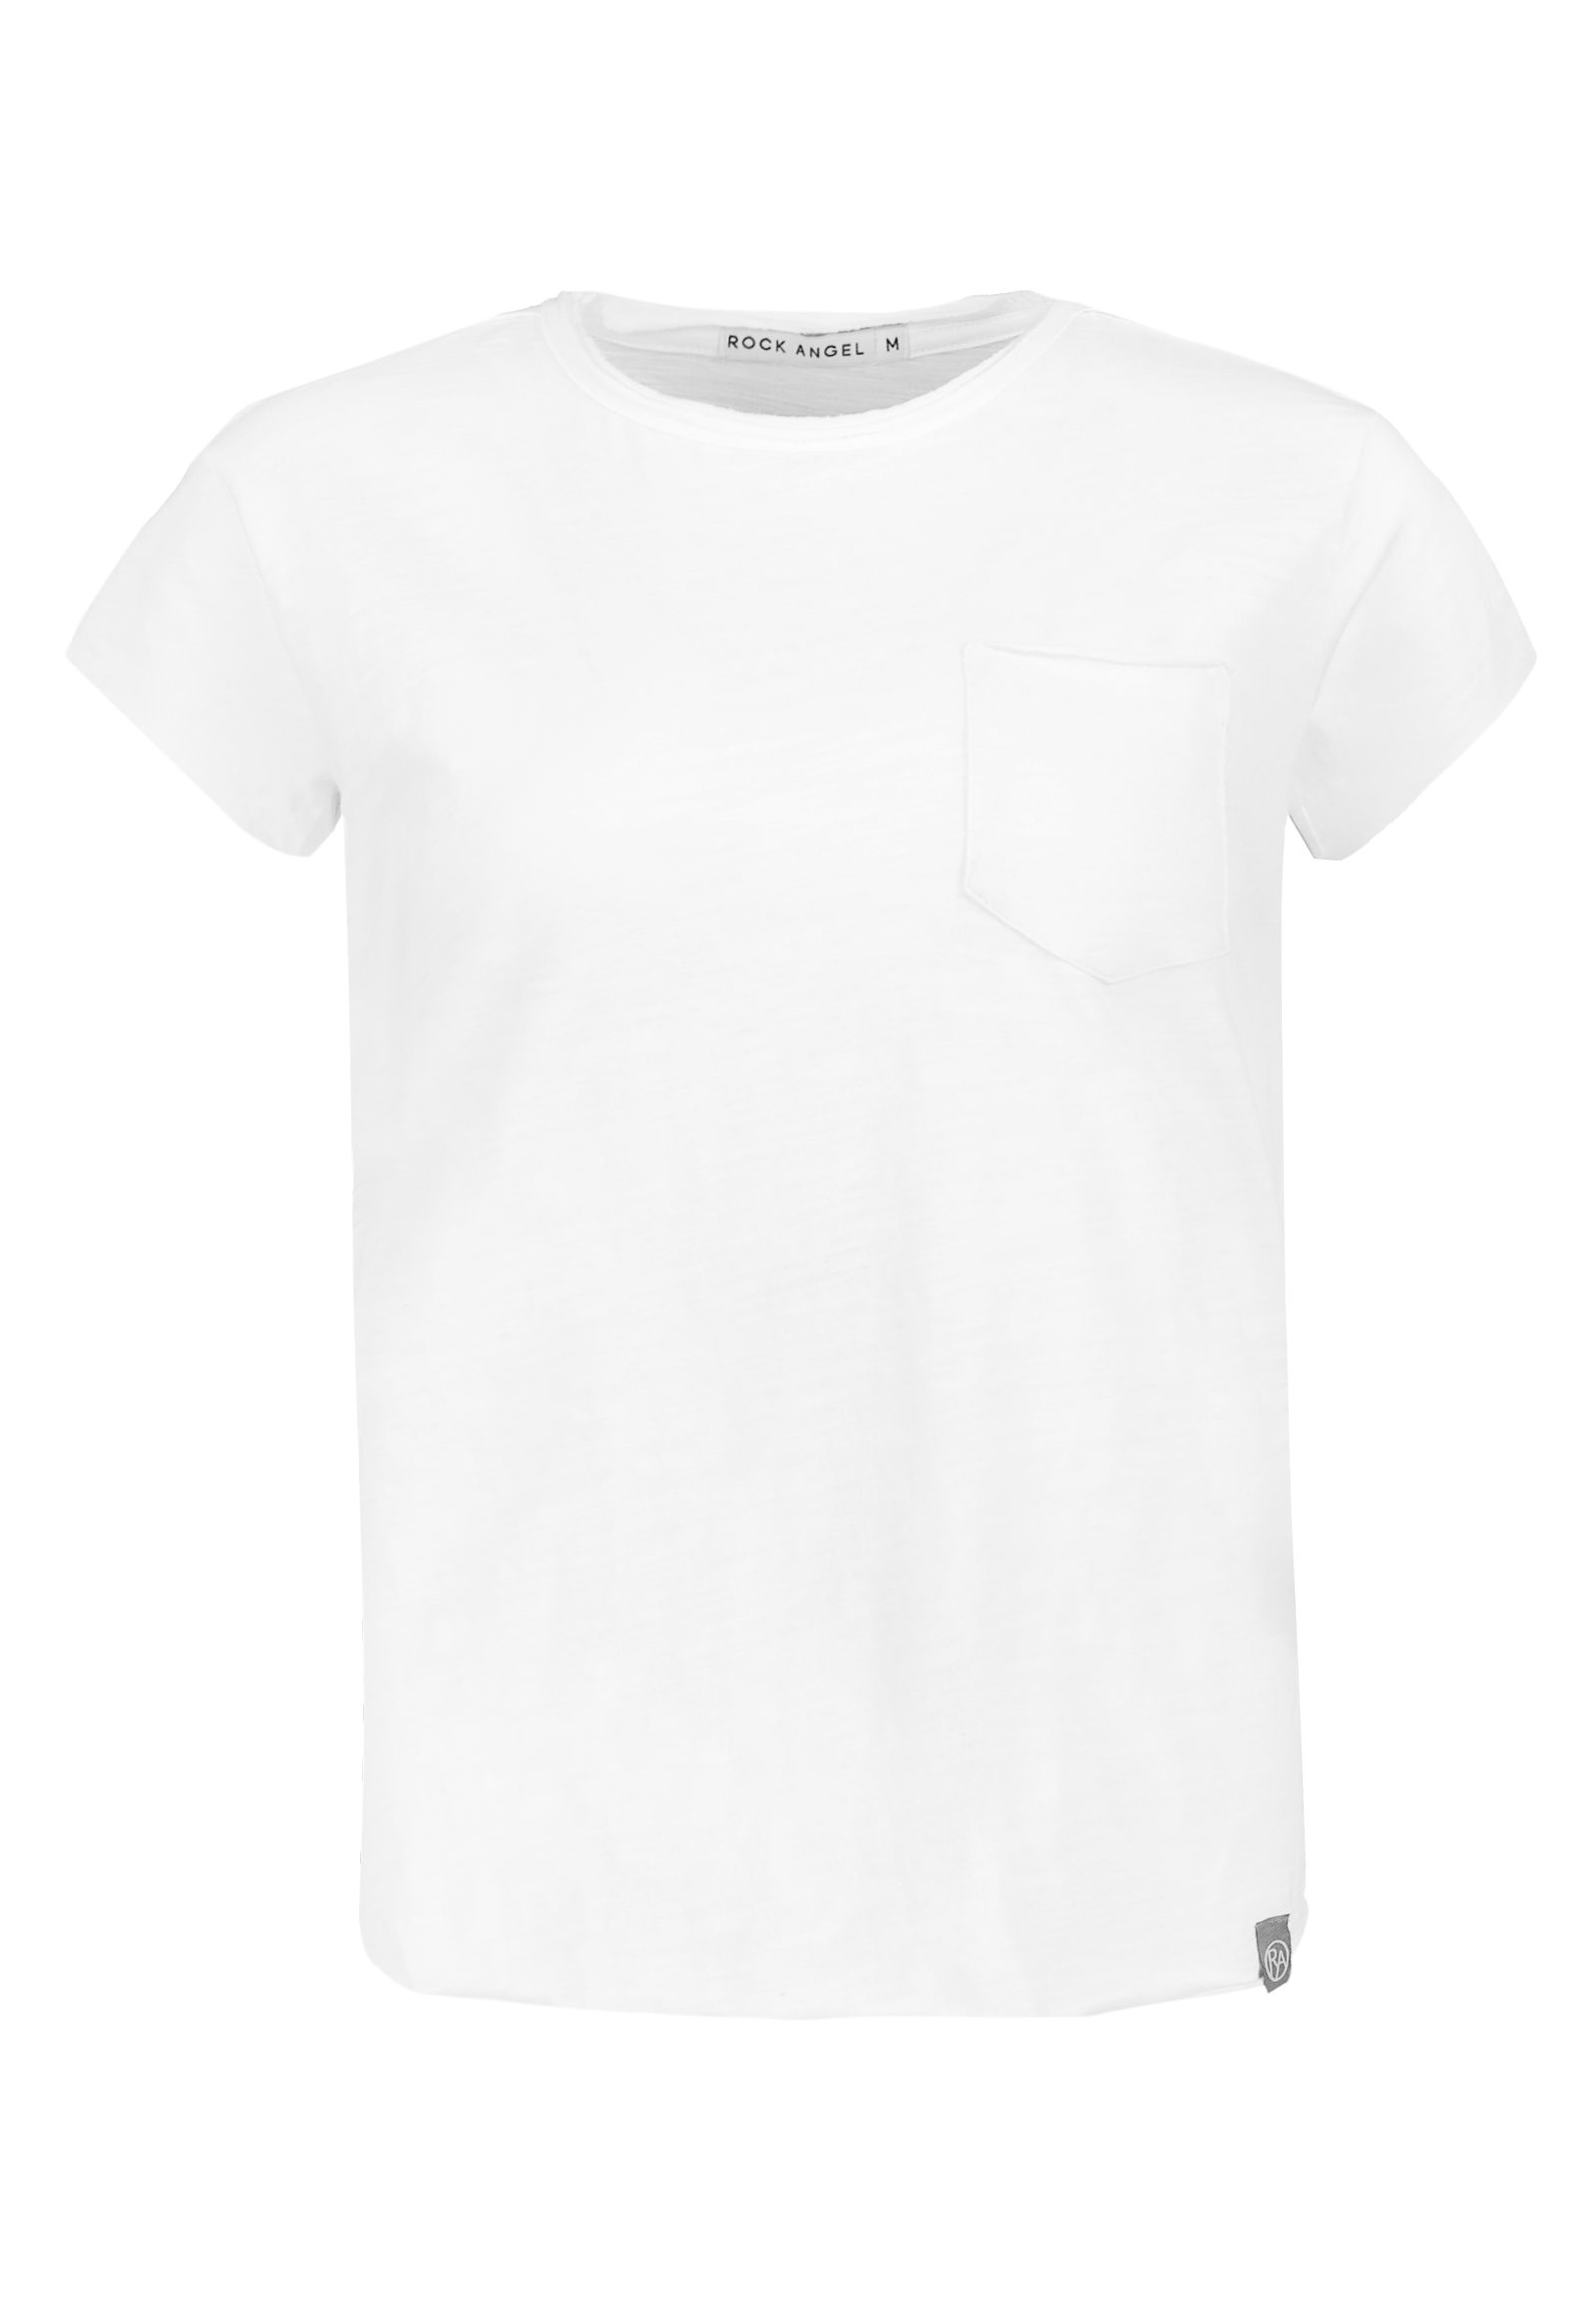 Vorschau: Basic T-Shirt LANEY